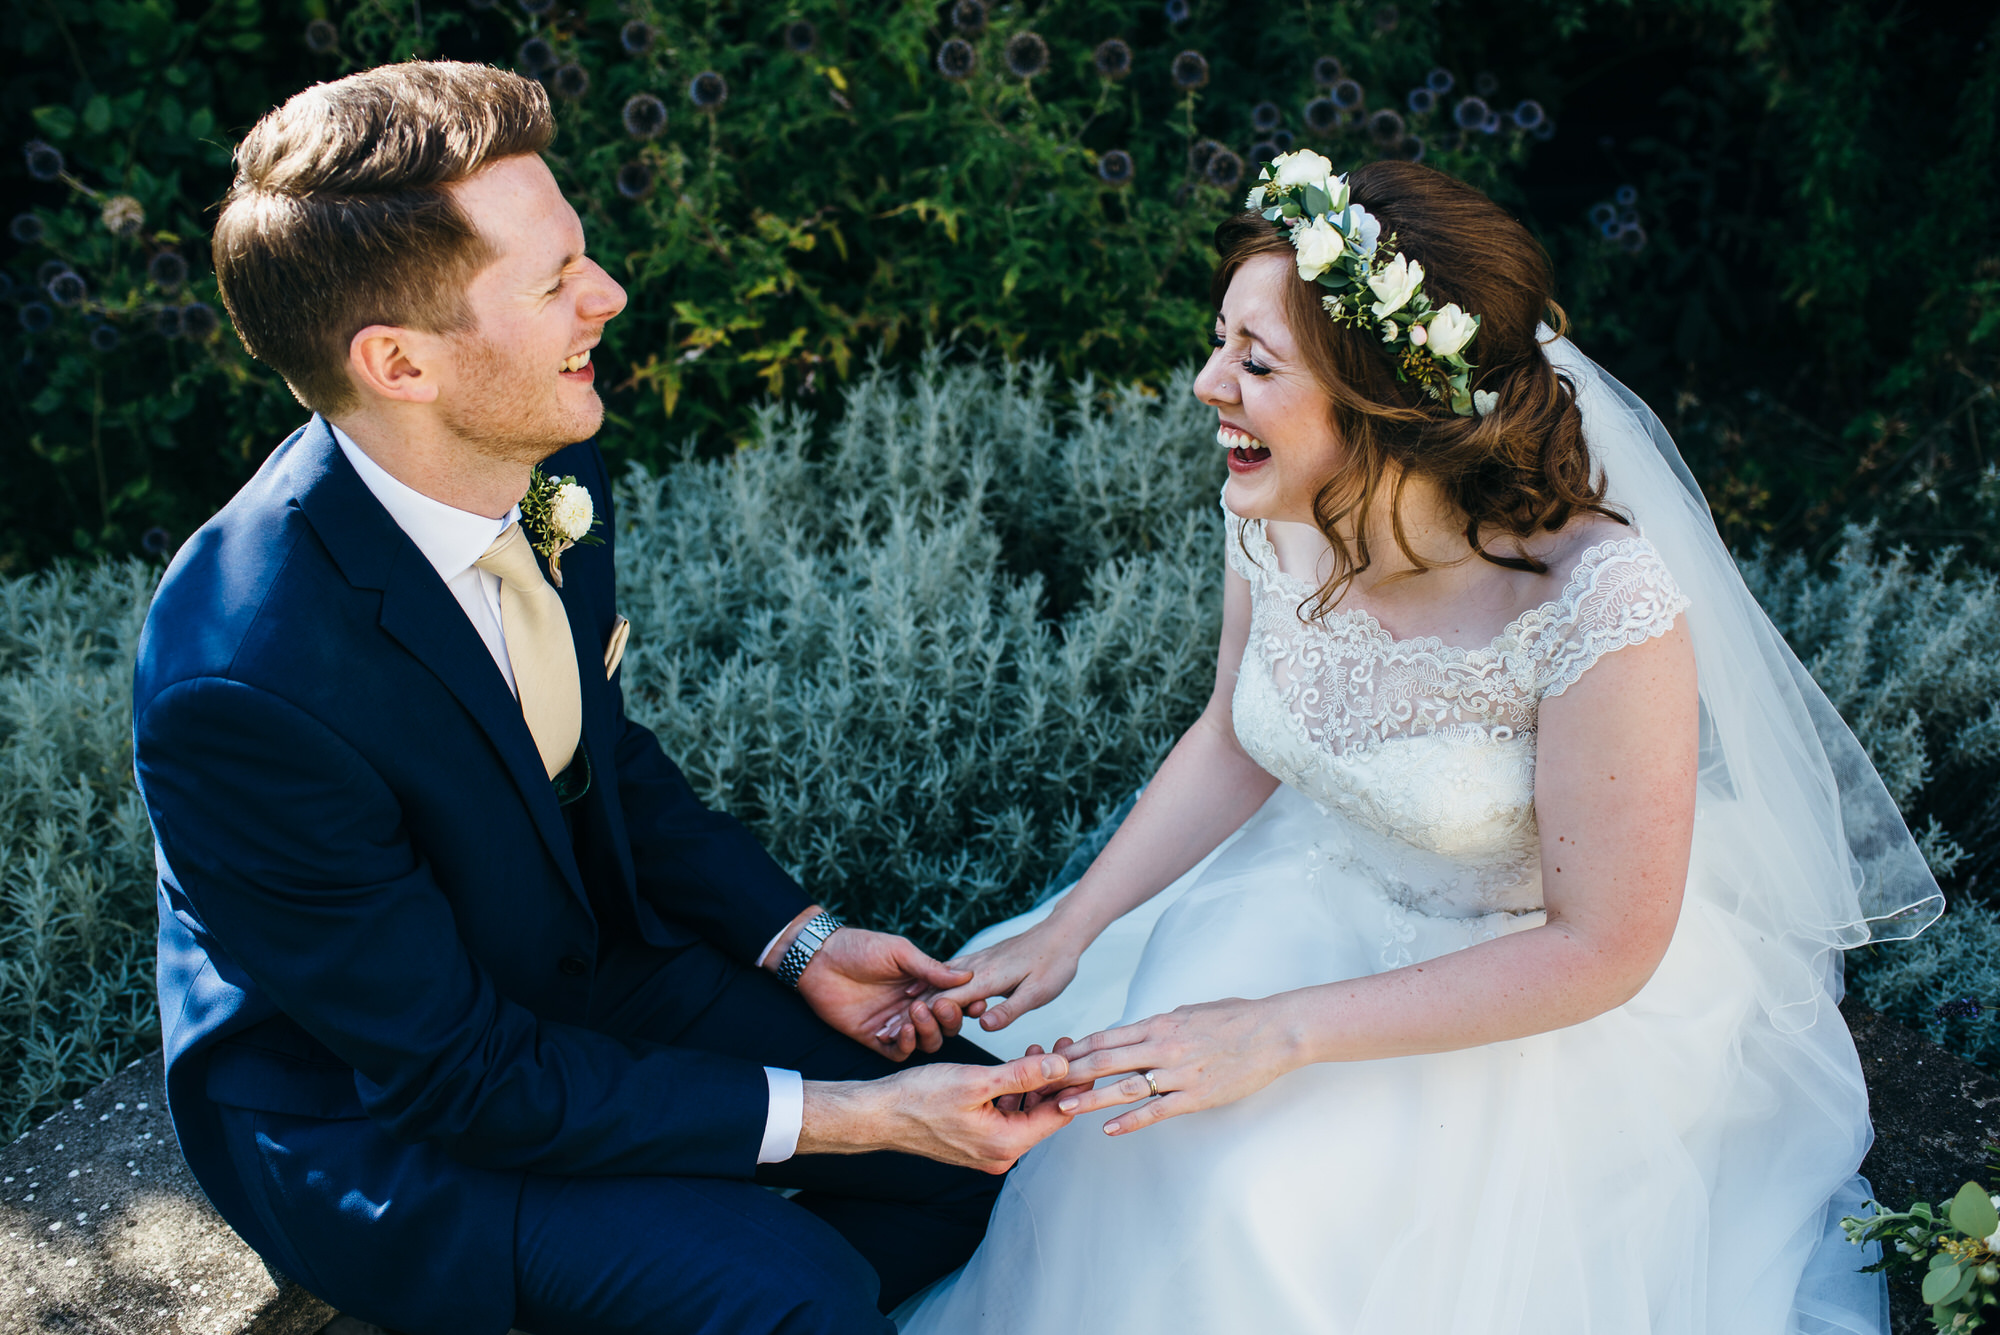 Natural wedding photography at Colville hall